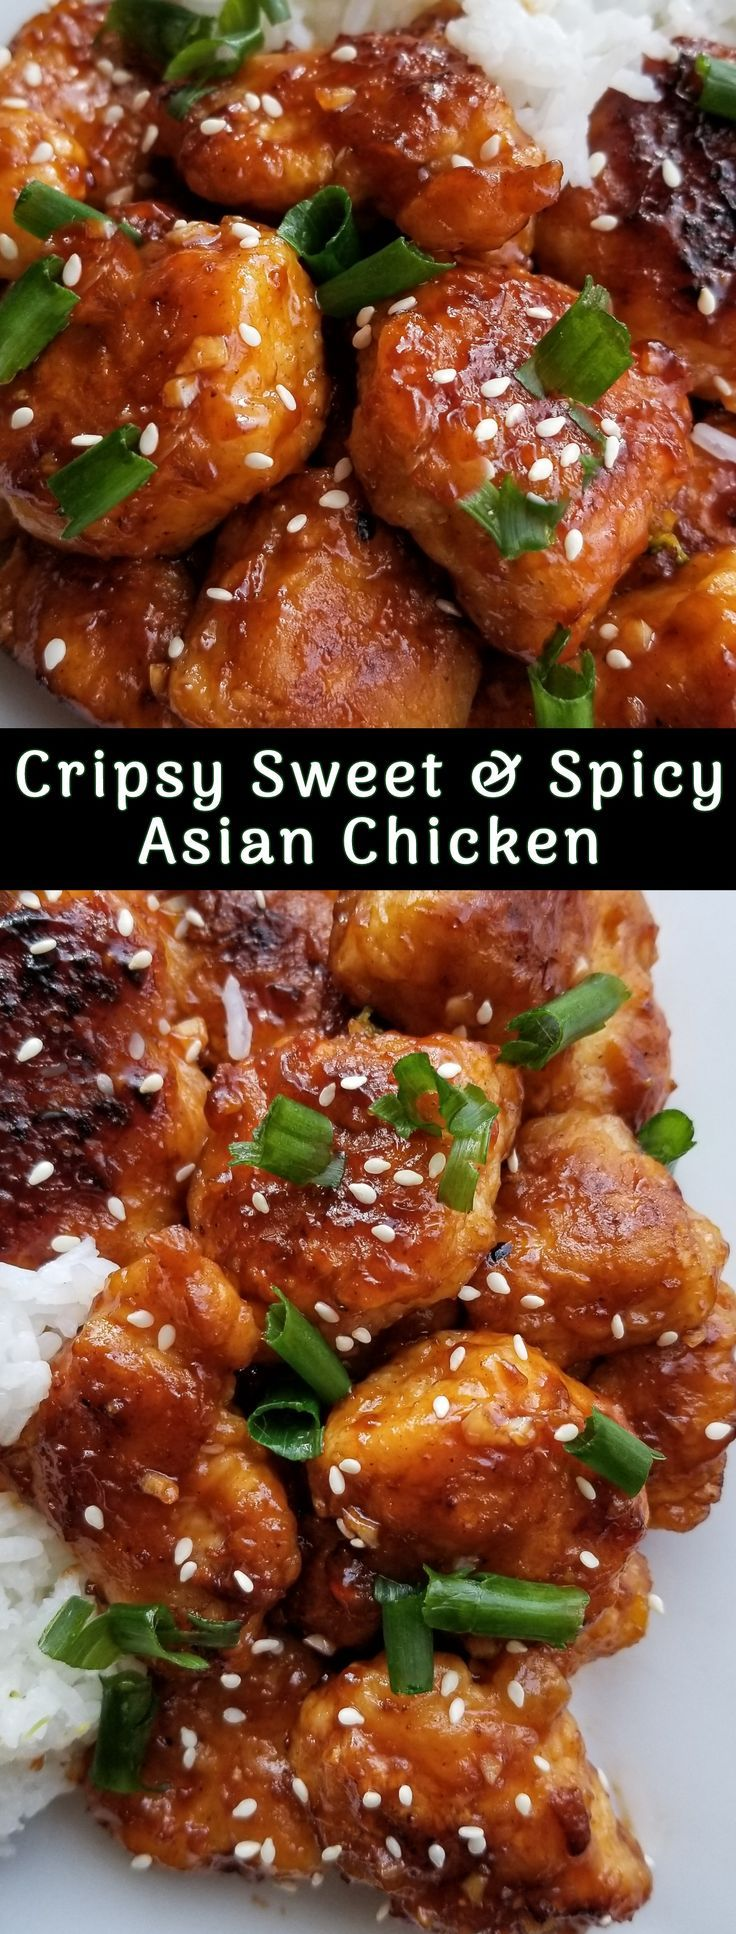 Crispy Sweet and Spicy Asian Chicken | Recipe in 2020 ...